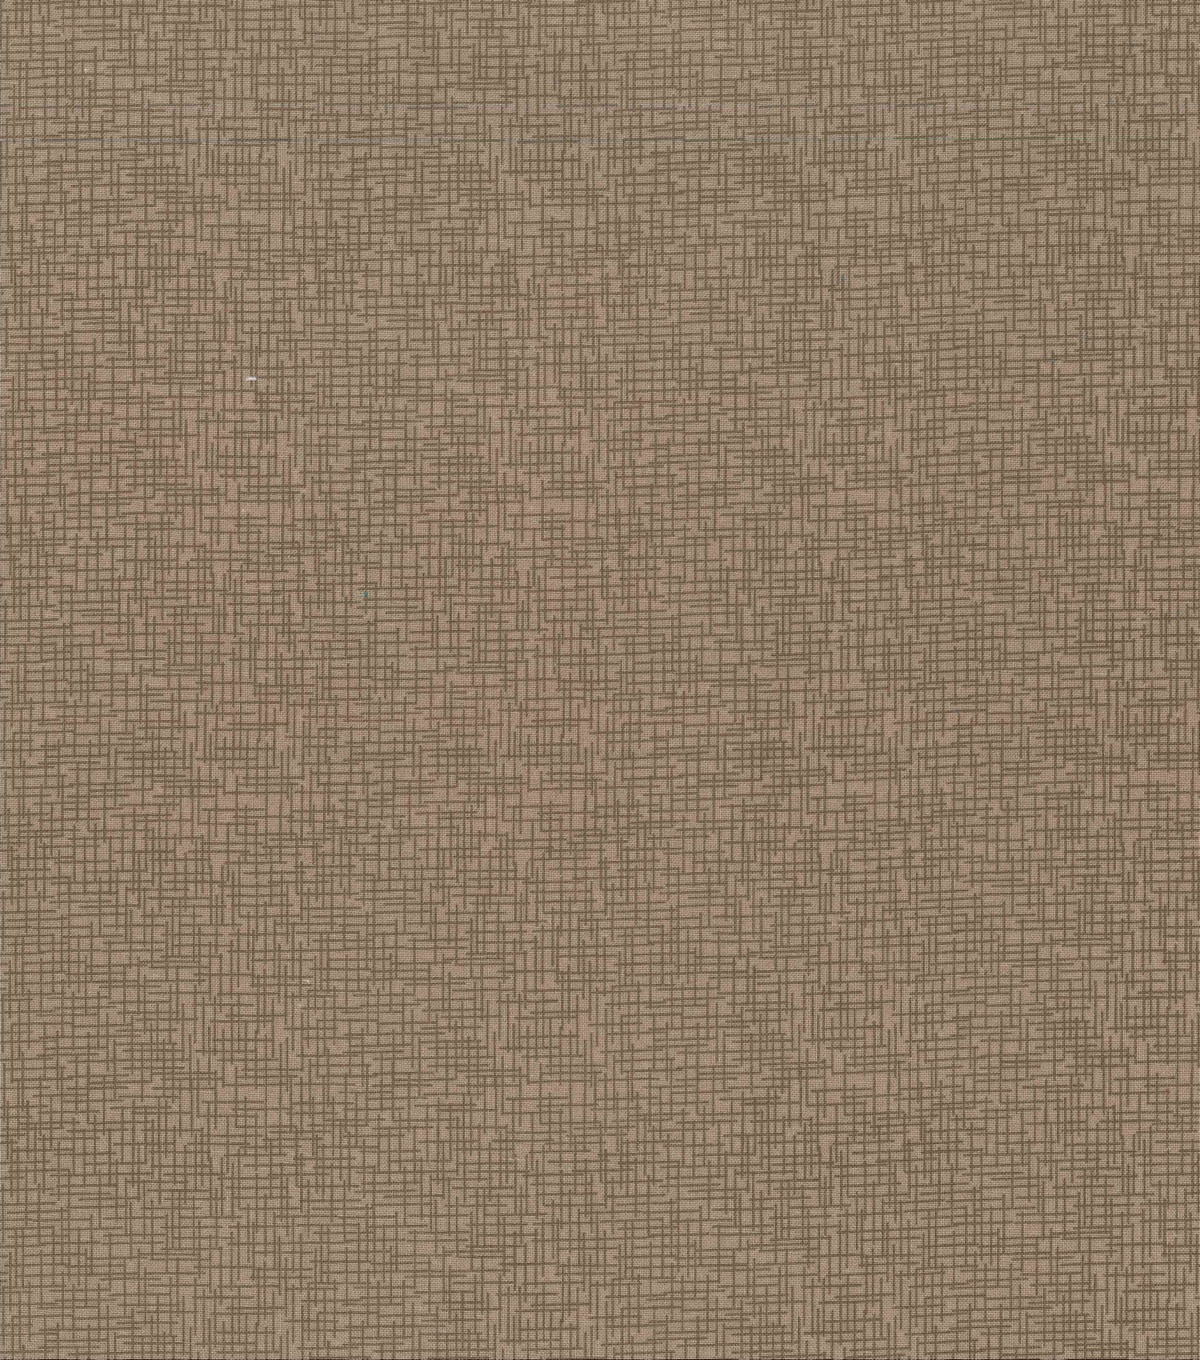 "Keepsake Calico™ Cotton Fabric 43""-Portabella Crosshatch Blender"